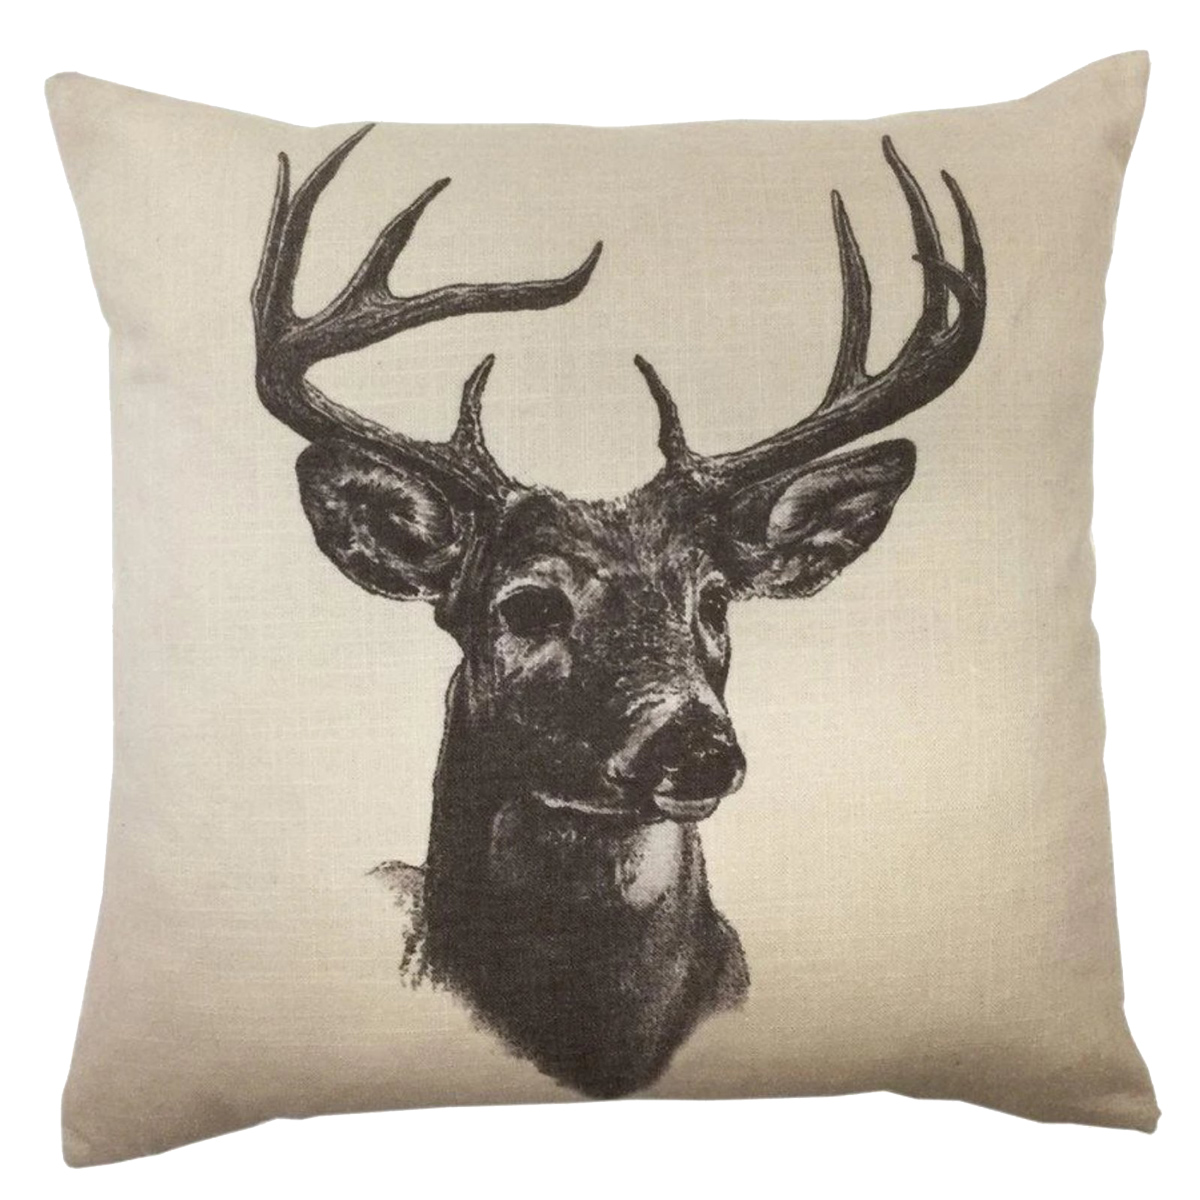 Deer Print Pillow